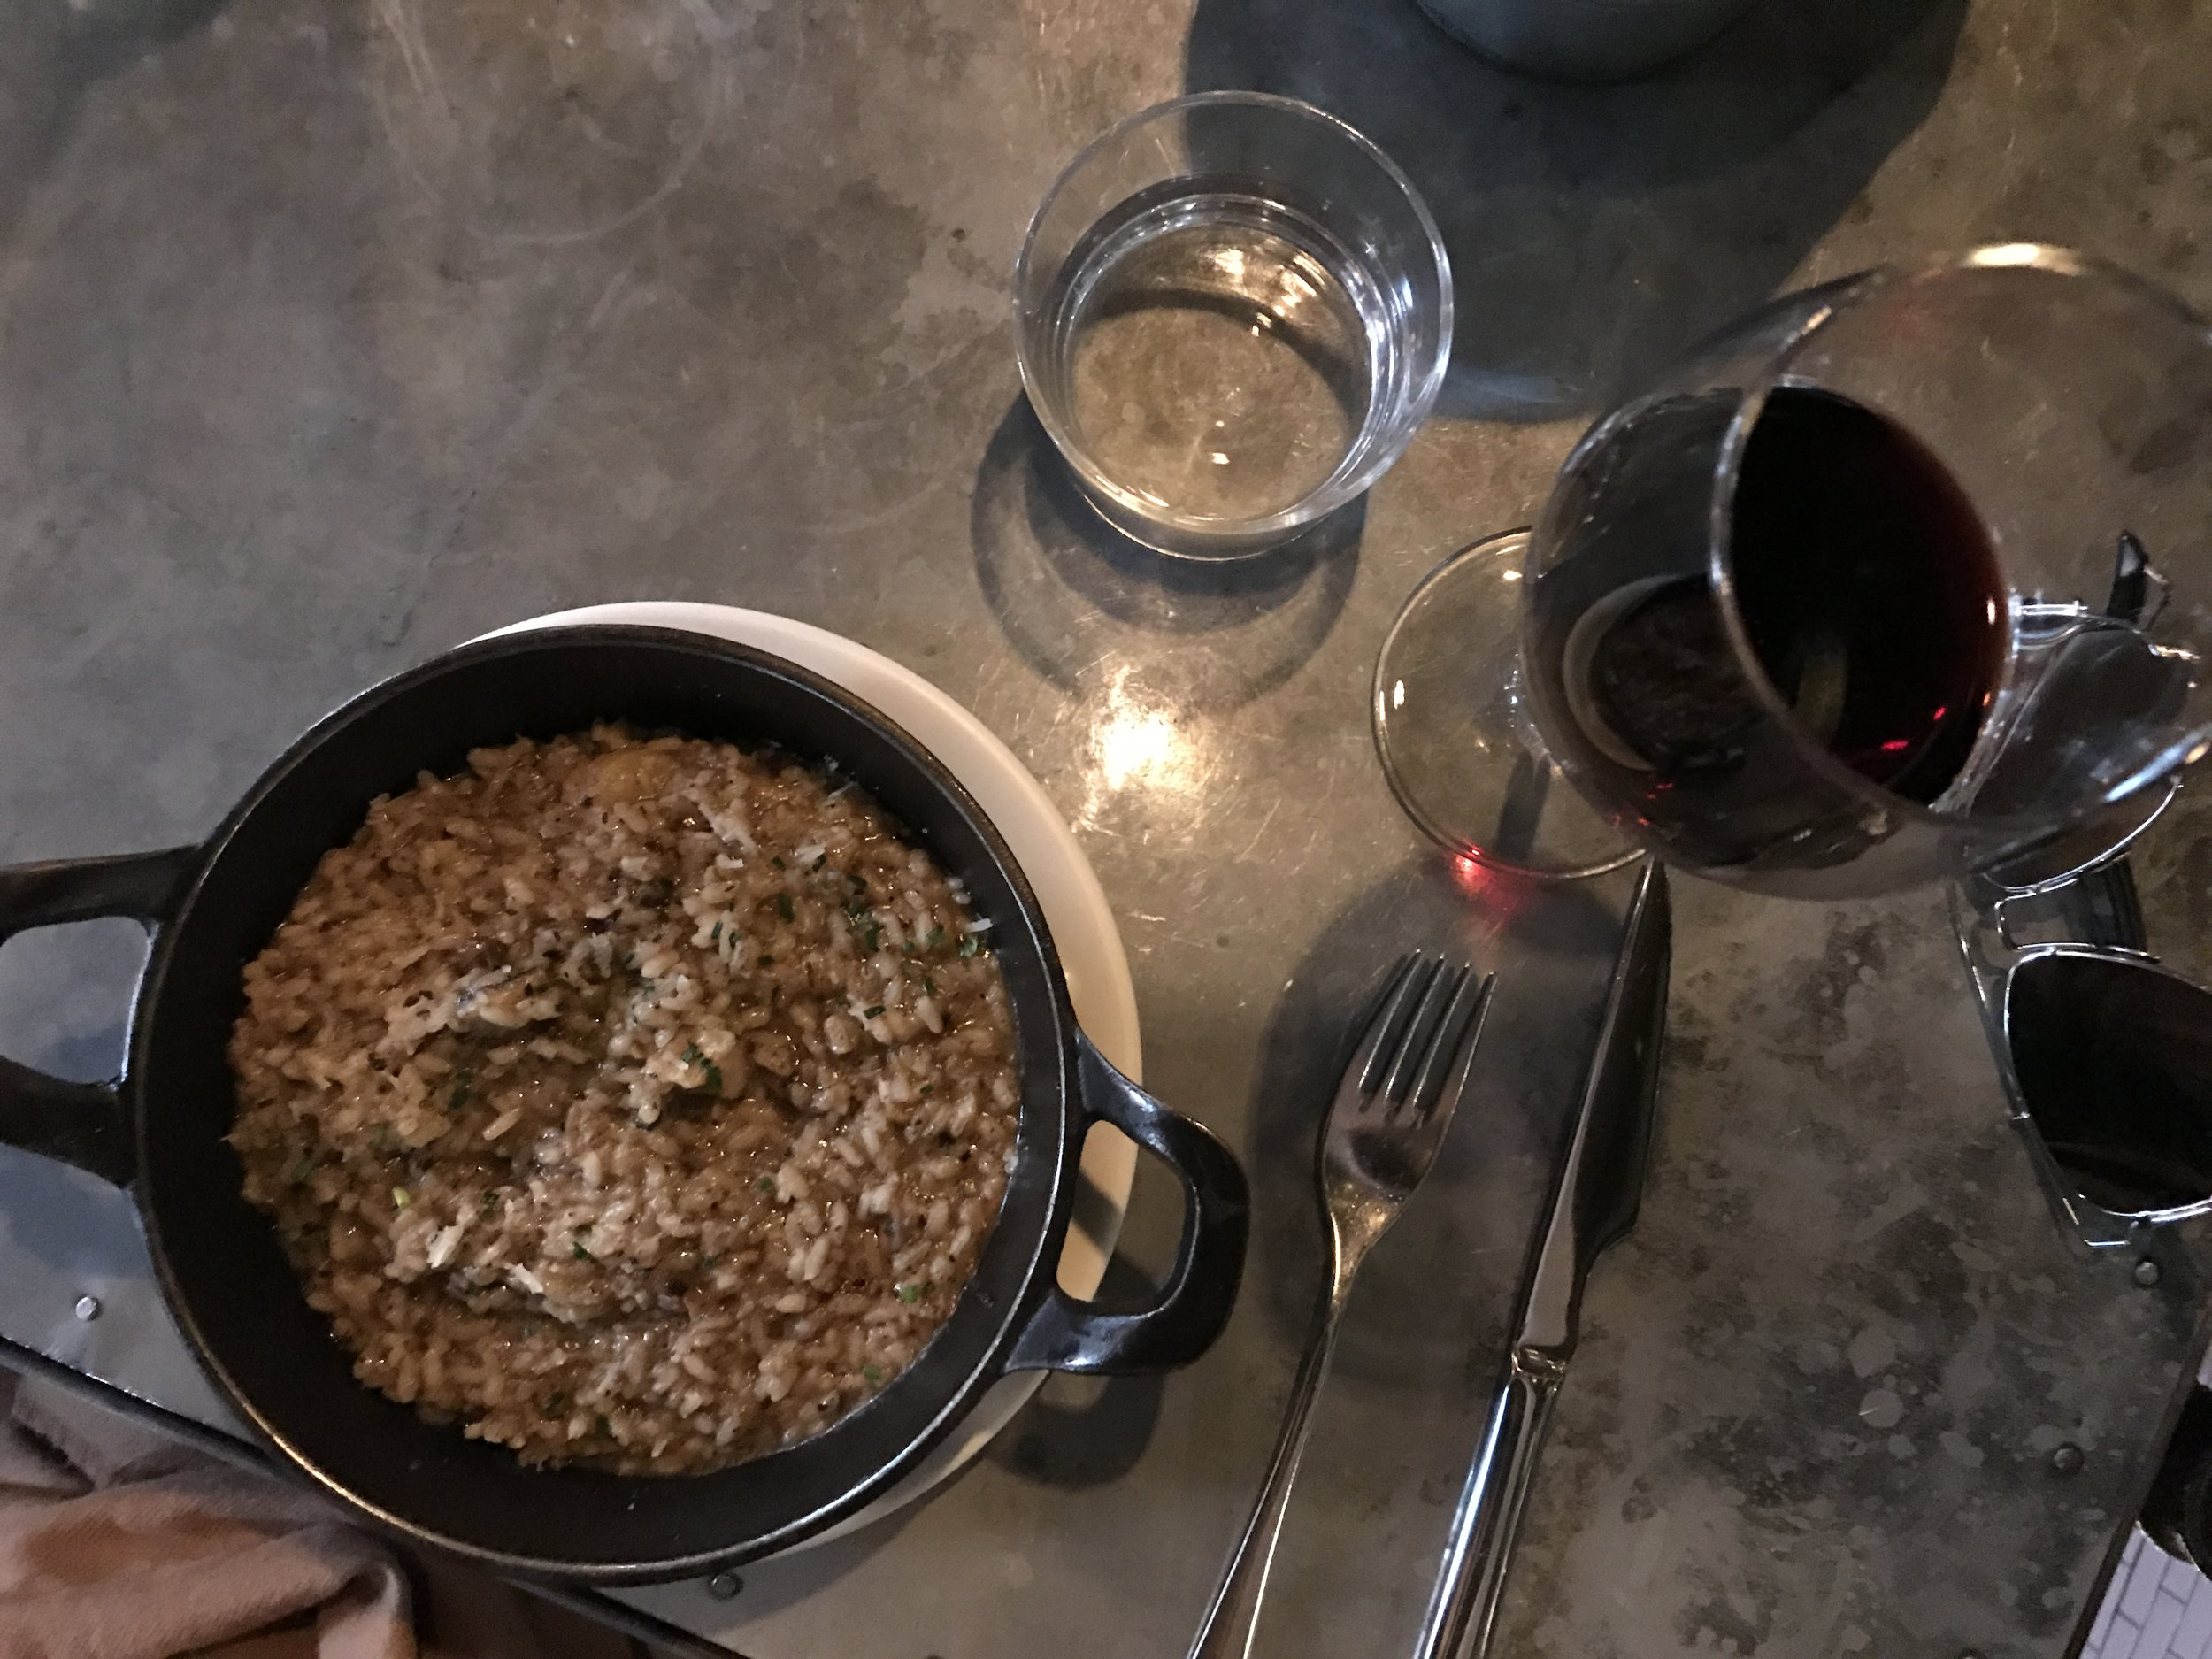 The oxtail risotto and (first) glass of Rioja